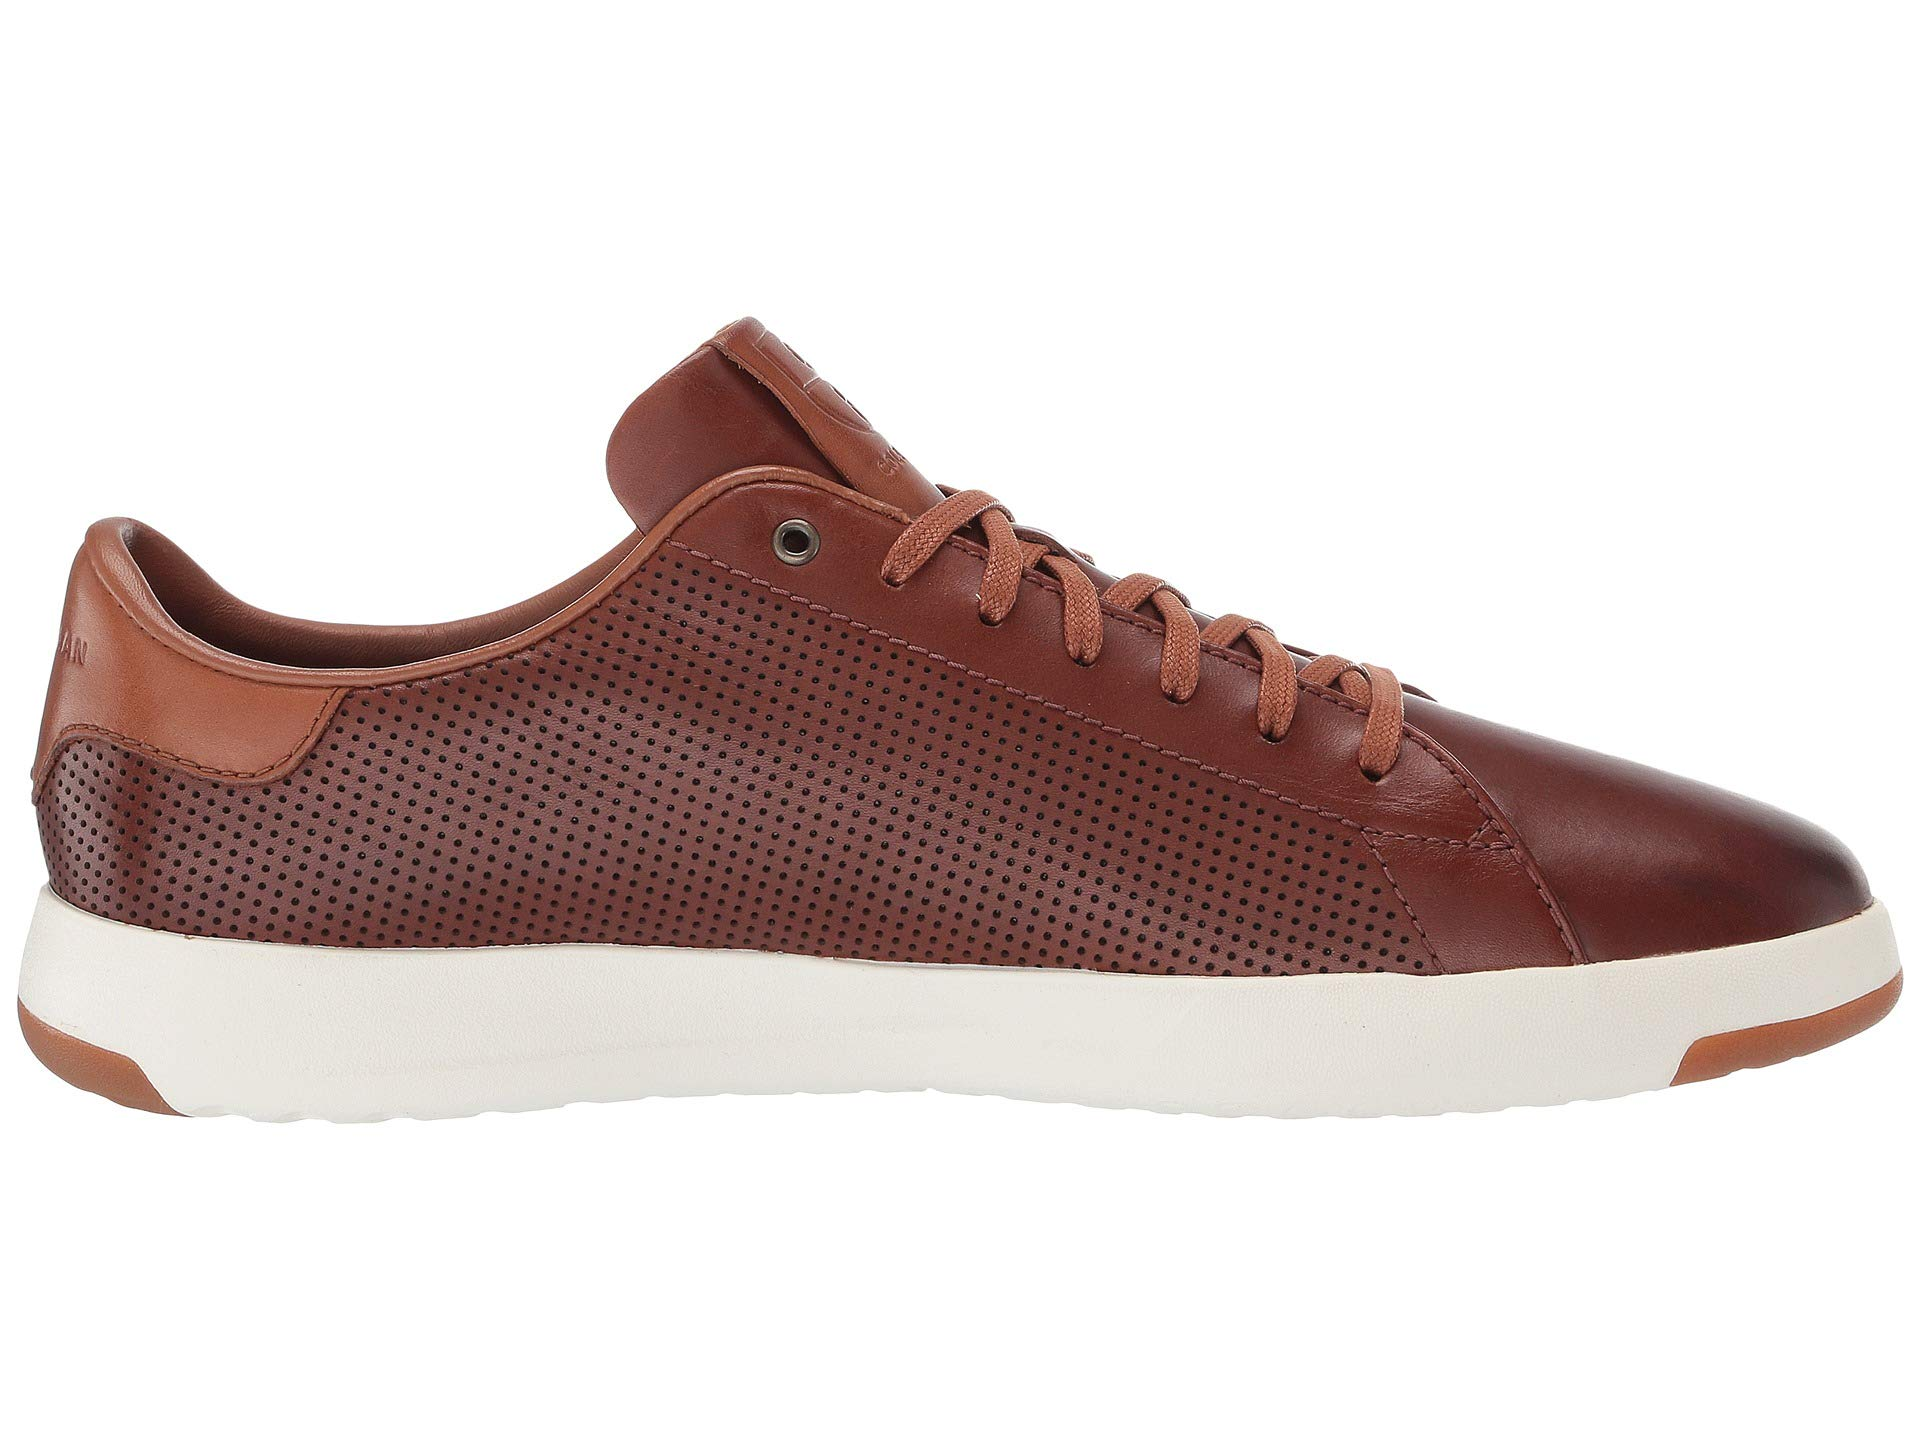 Cole Haan Mens Grandpro Tennis Sneaker 7 Woodbury Handstained Leather by Cole Haan (Image #8)